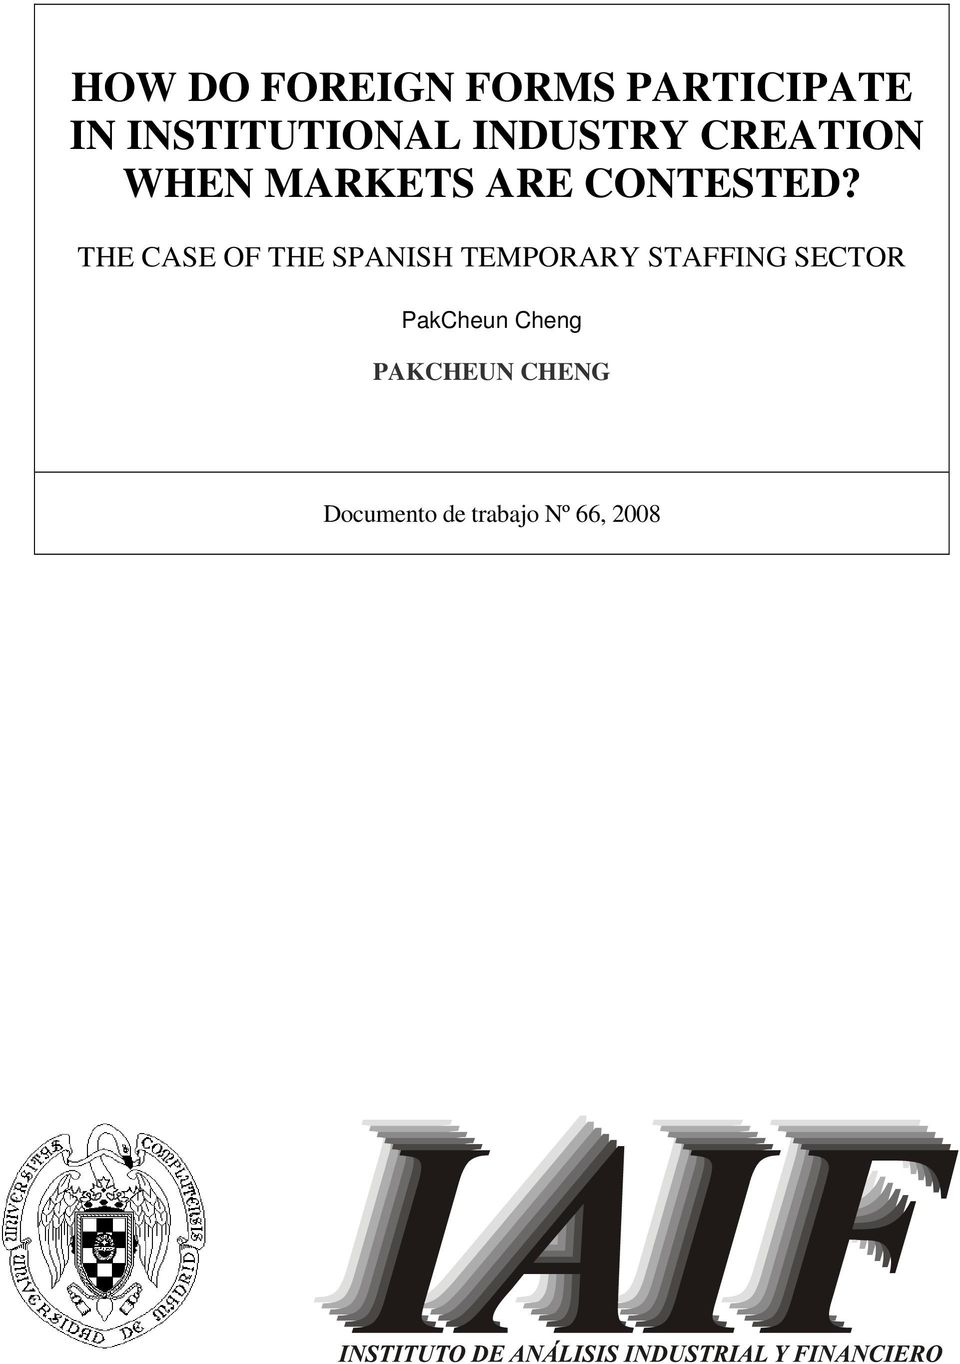 THE CASE OF THE SPANISH TEMPORARY STAFFING SECTOR